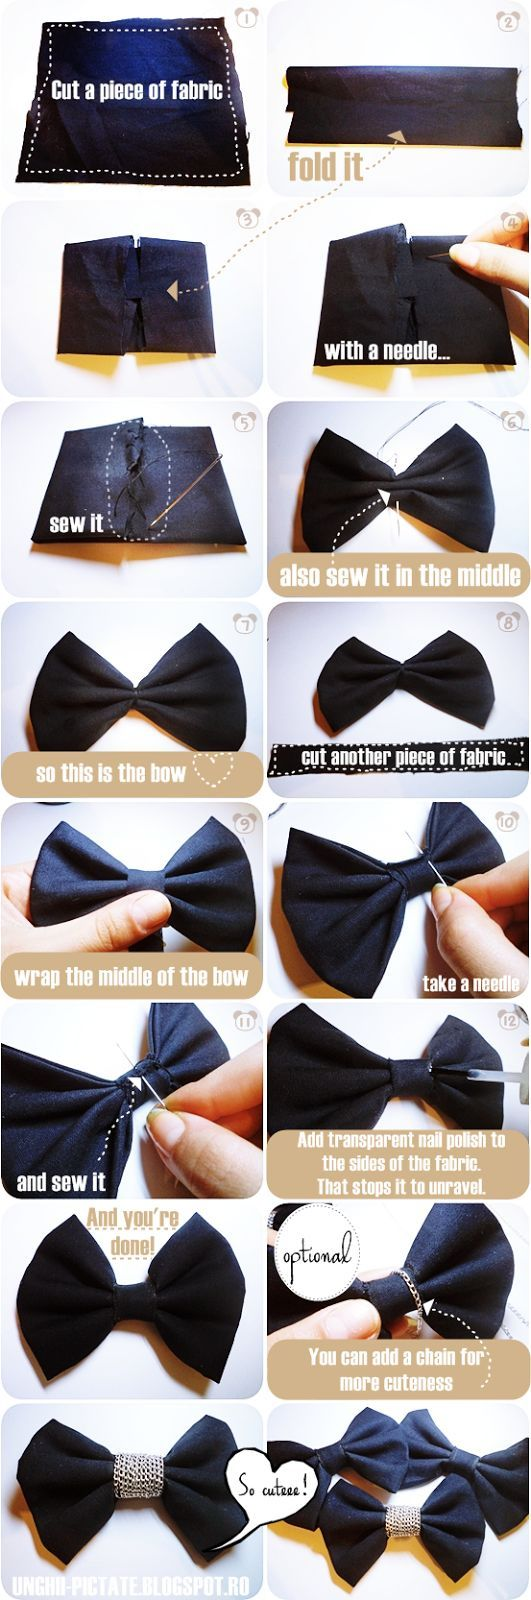 ♥ C.L.M.'s Nail Art Blog ♥: DIY: Cute bow tie with chain/ Cum sa faci un papion (pas cu pas)?